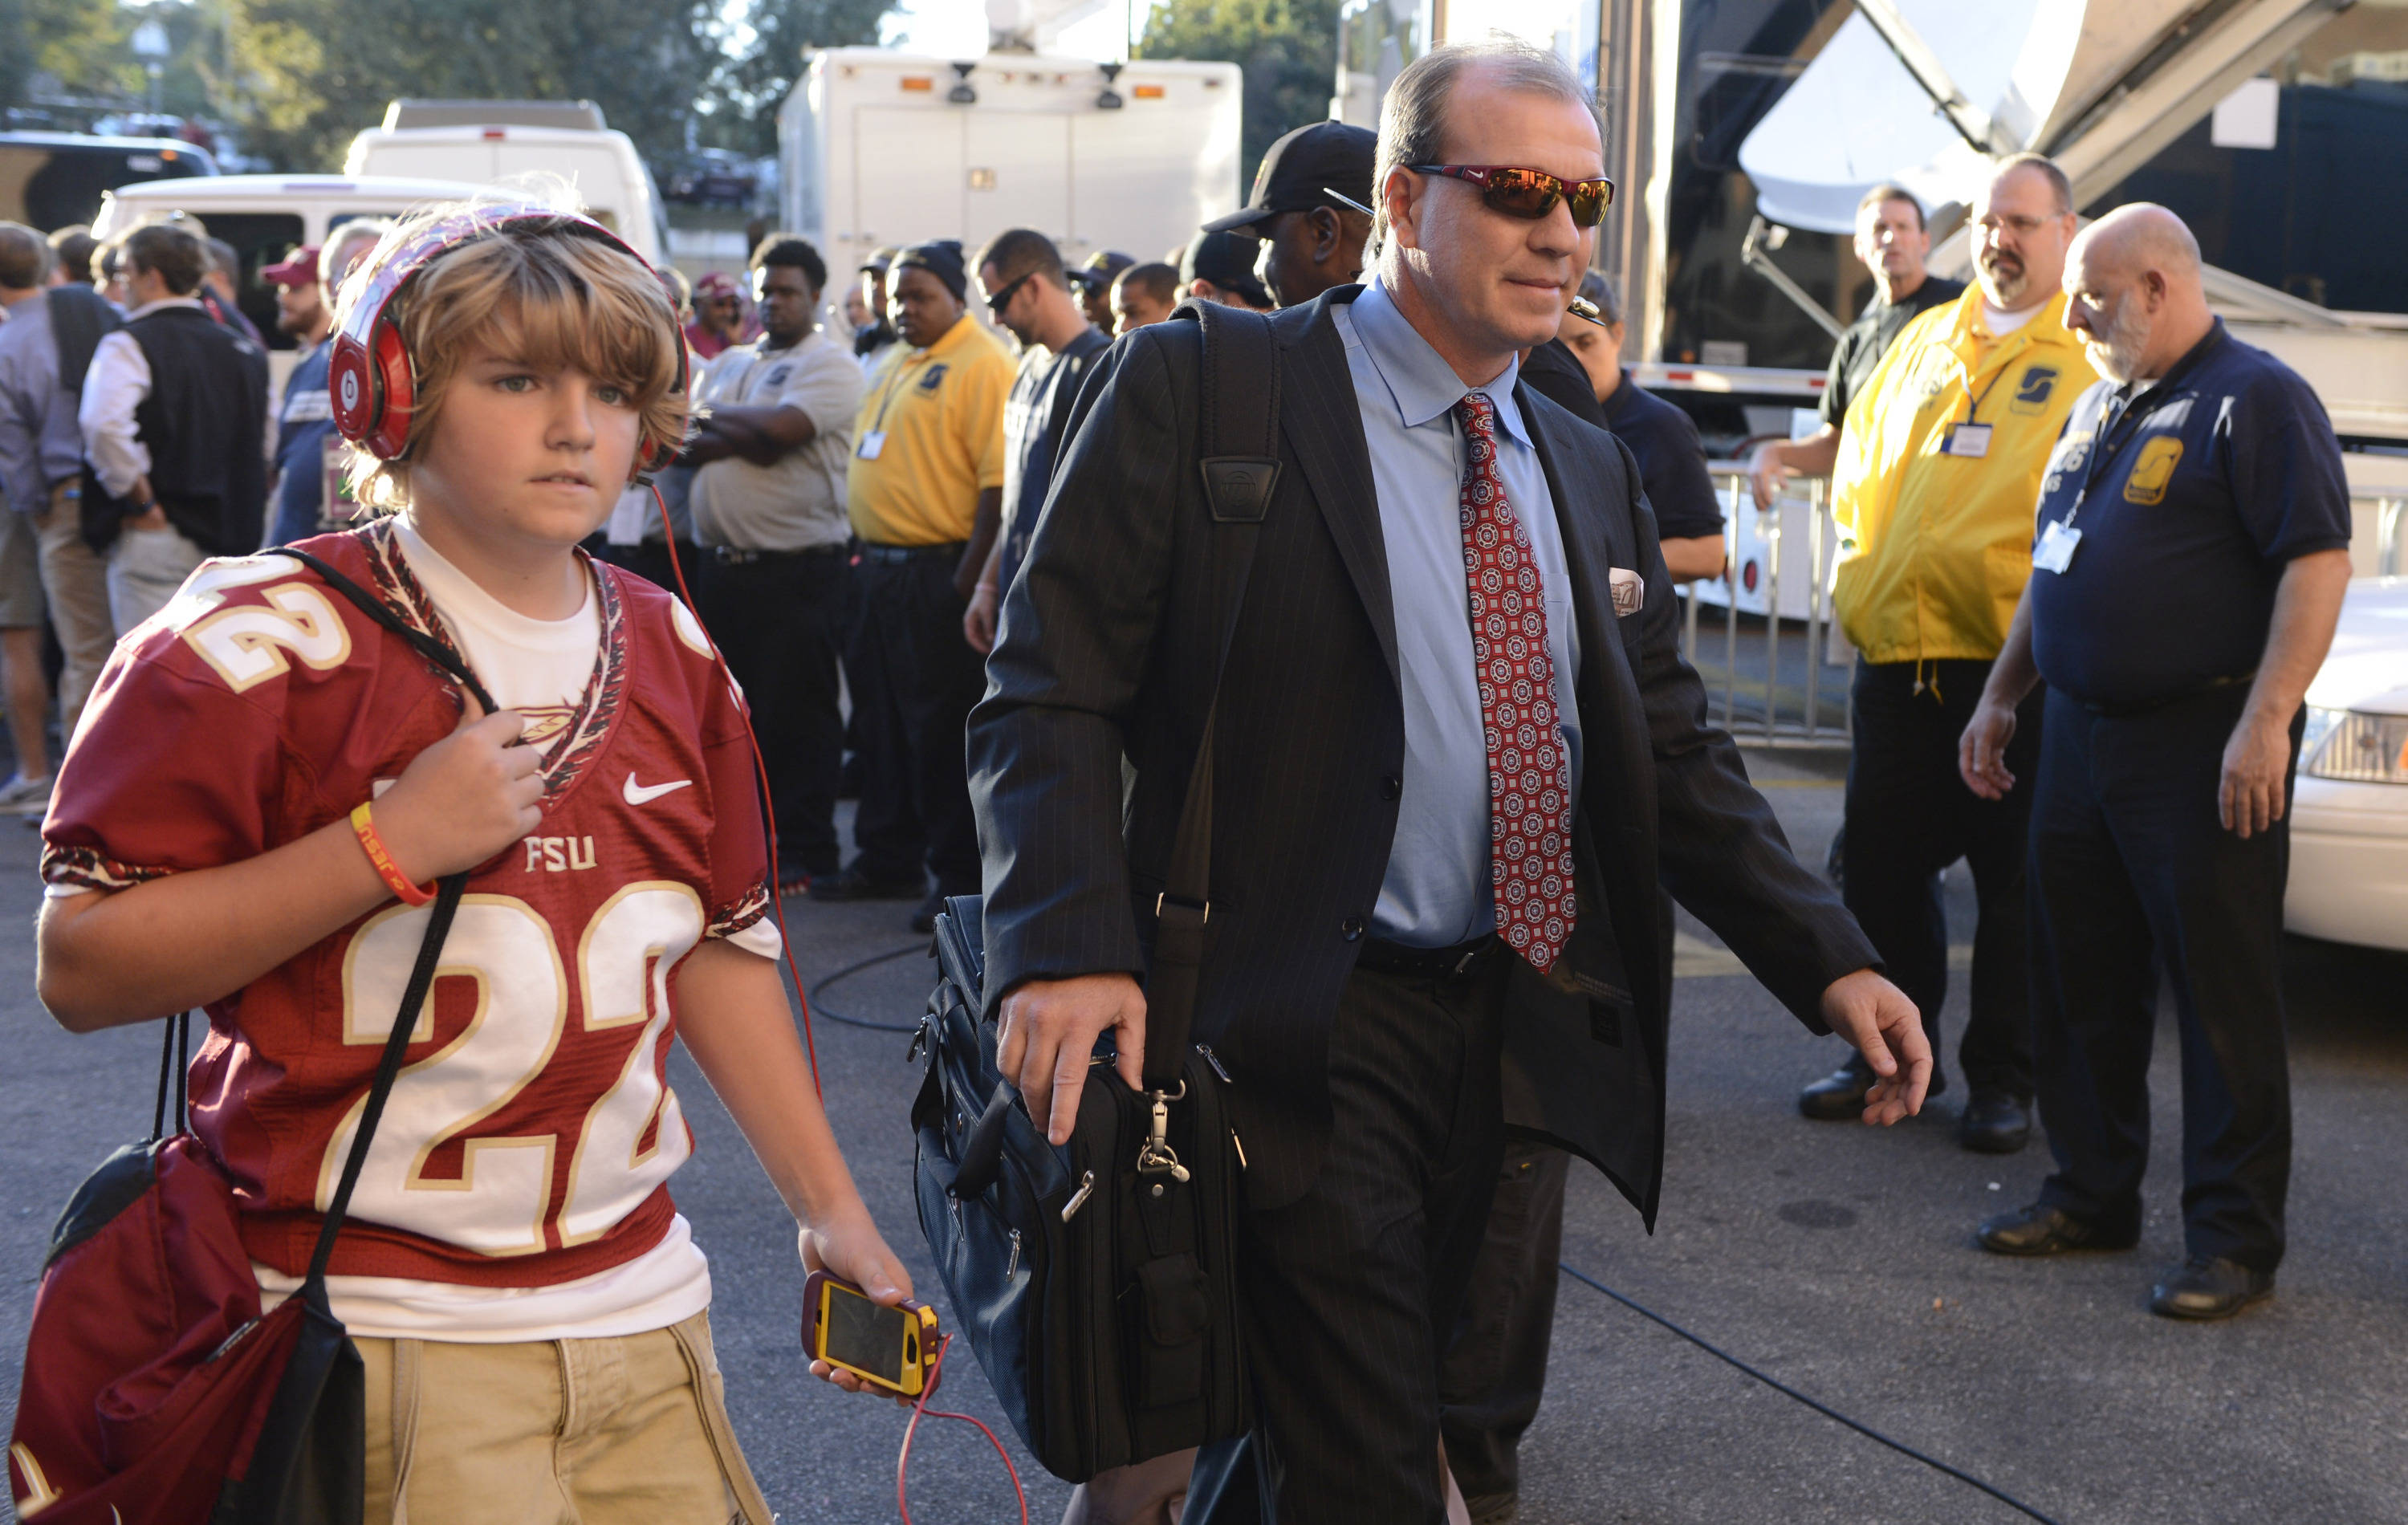 Florida State Seminoles head coach Jimbo Fisher arrives at Doak Campbell Stadium with his son Trey Fisher before the game against the Miami Hurricanes. Mandatory Credit: John David Mercer-USA TODAY Sports